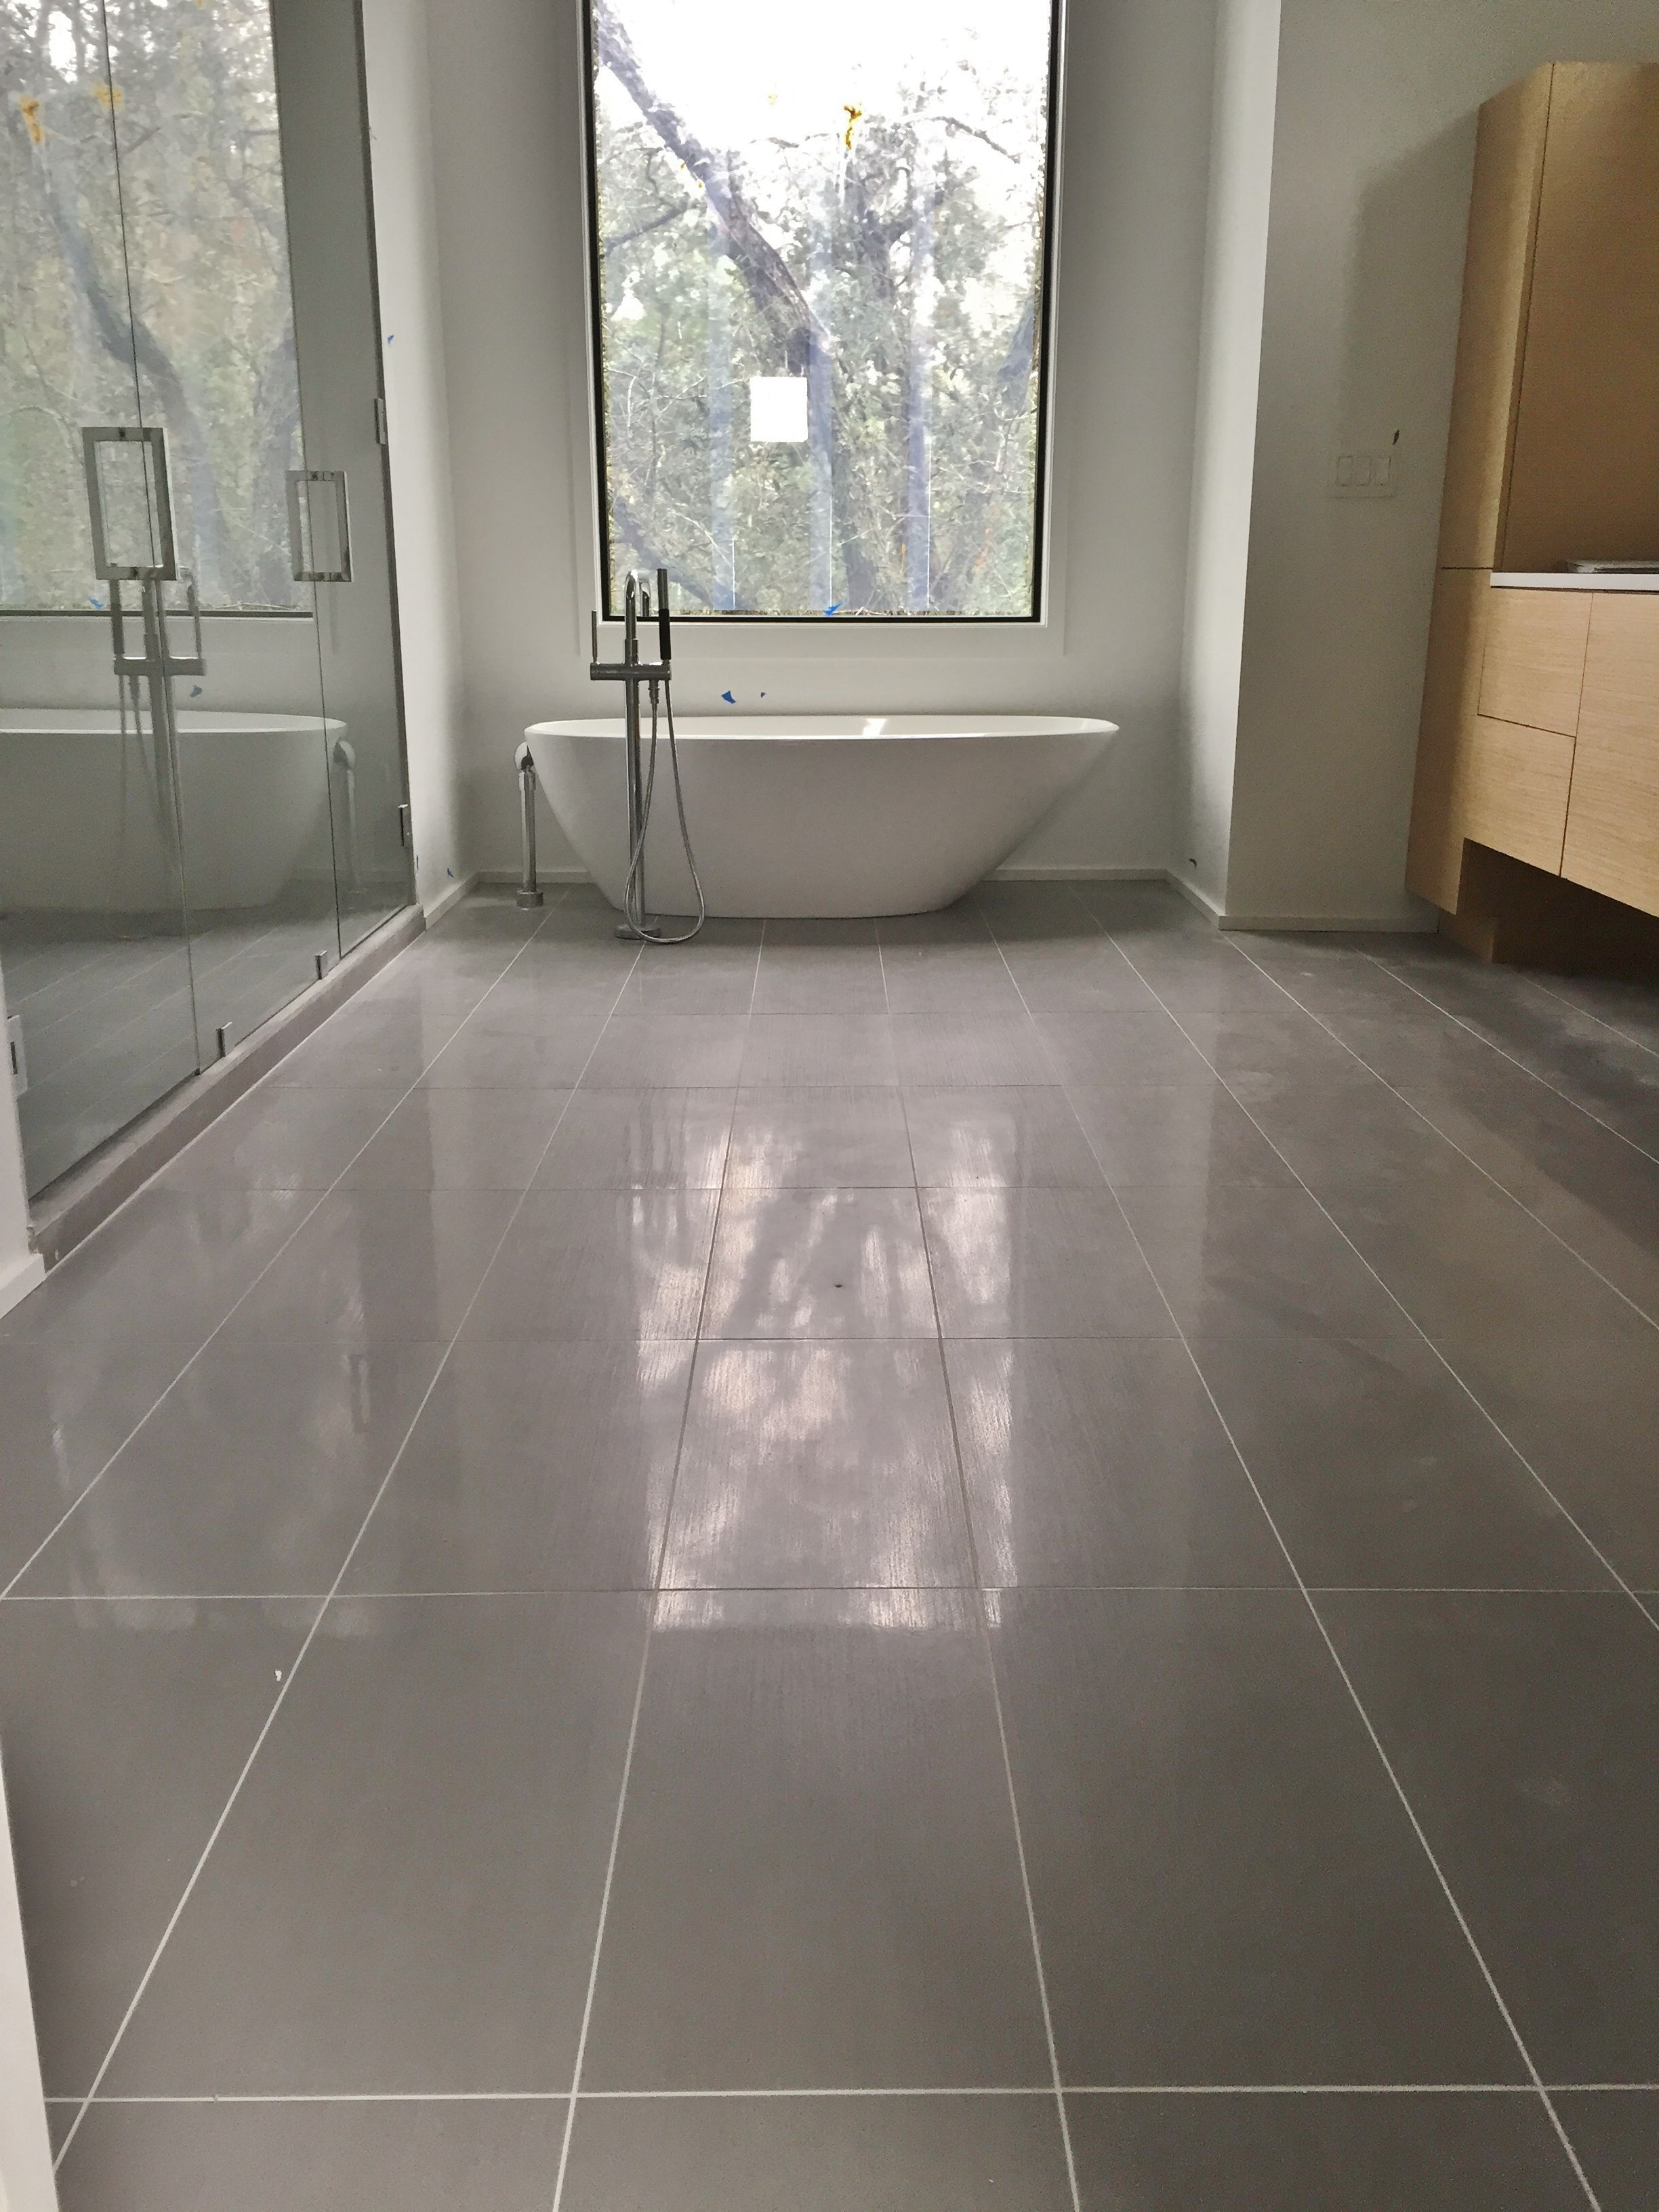 12x24 porcelain tile on master bathroom floor tile jobs for Master bathroom flooring